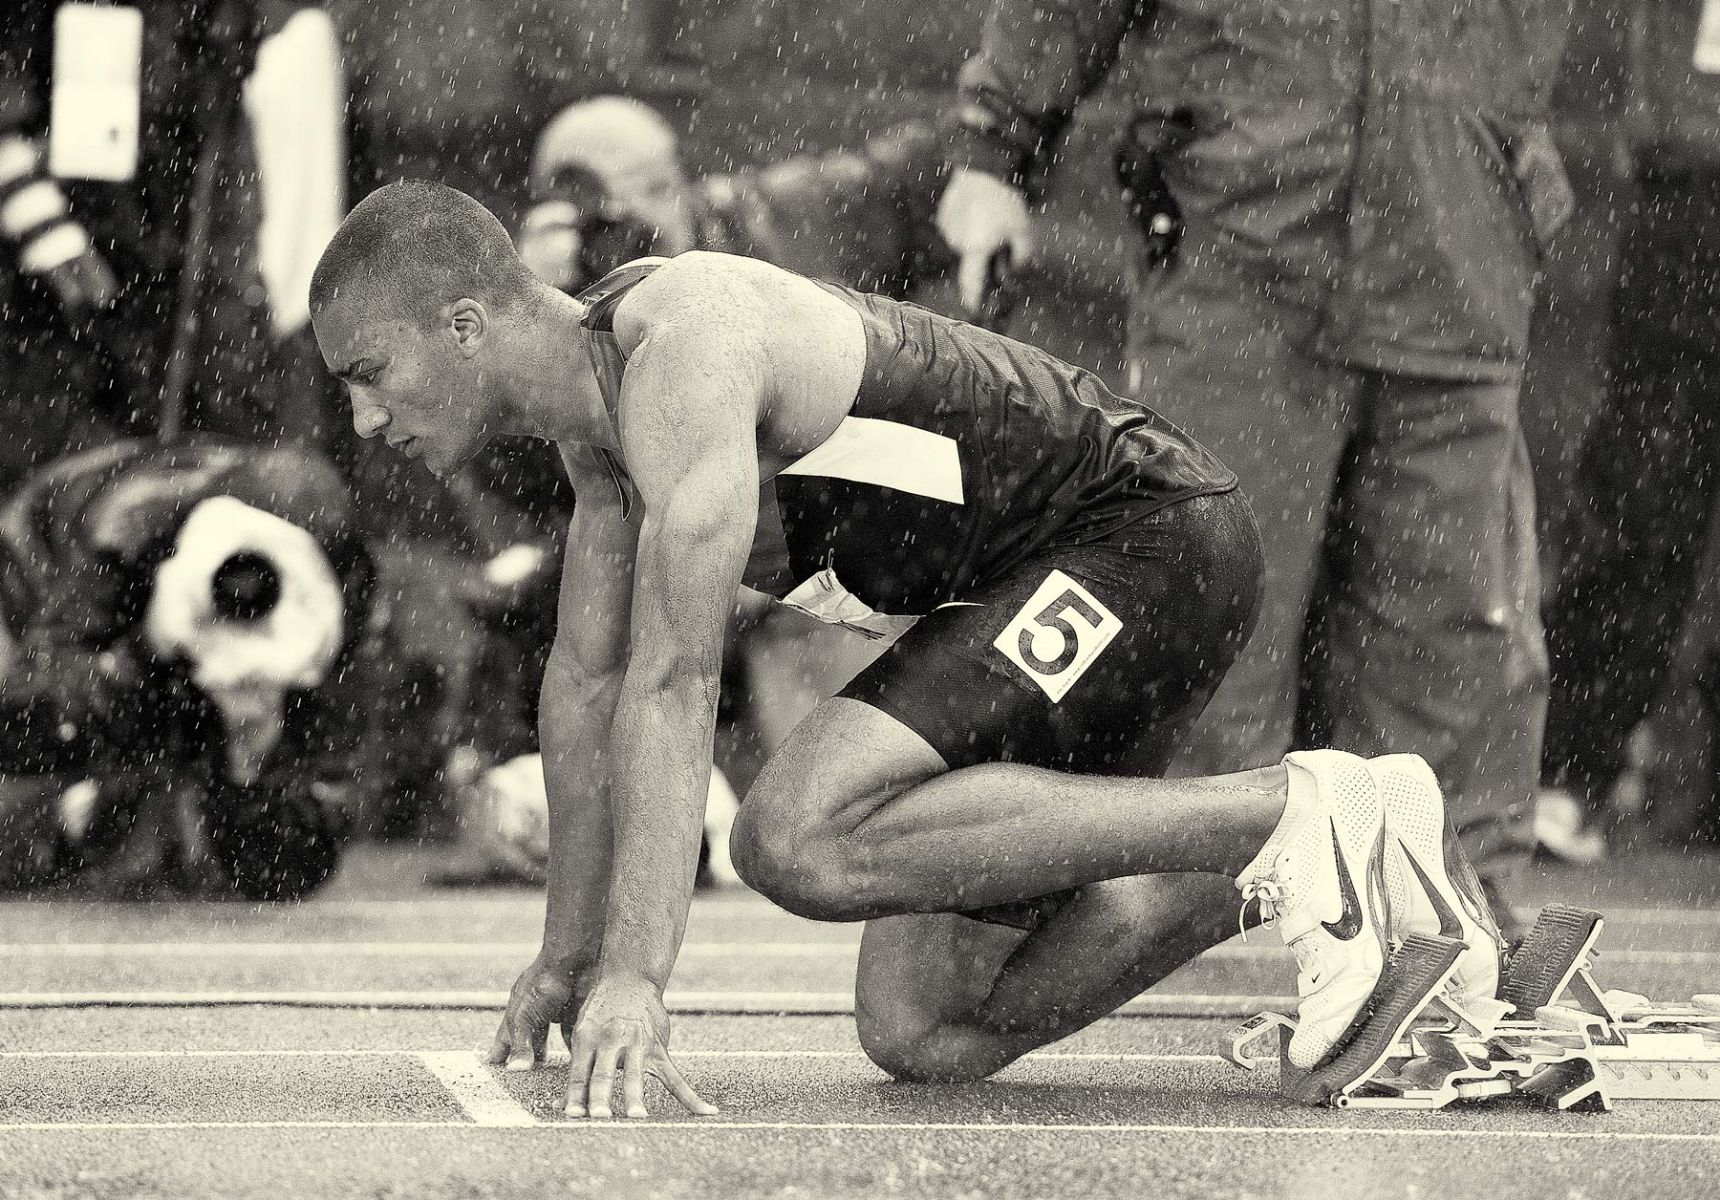 1ustrials2012_ashton_eaton_rain_bw_decathlon_track_and_field_image_jeff_cohen_photo_lb.jpg